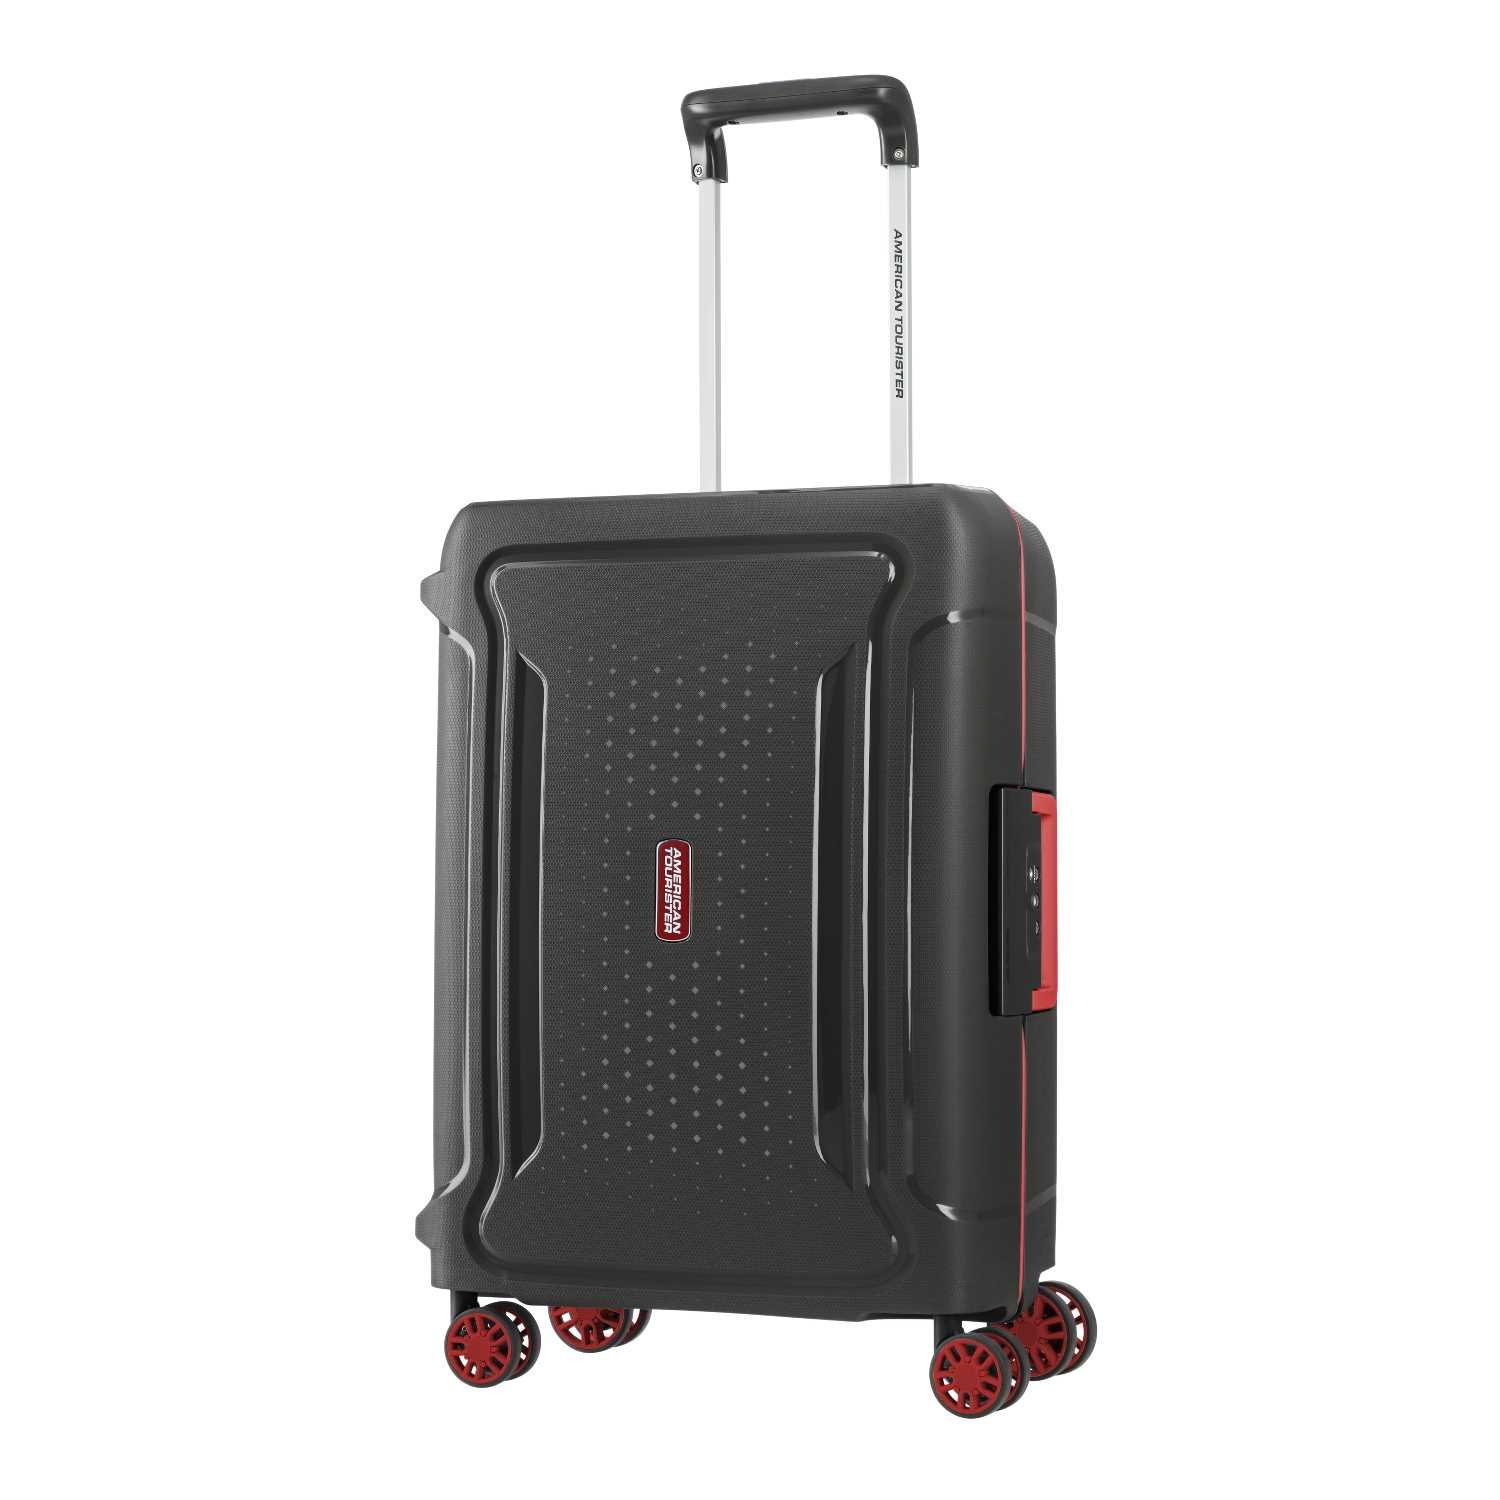 1d1823a6a7e1 American Tourister Tribus Hardside Luggage with Dual Spinner Wheels